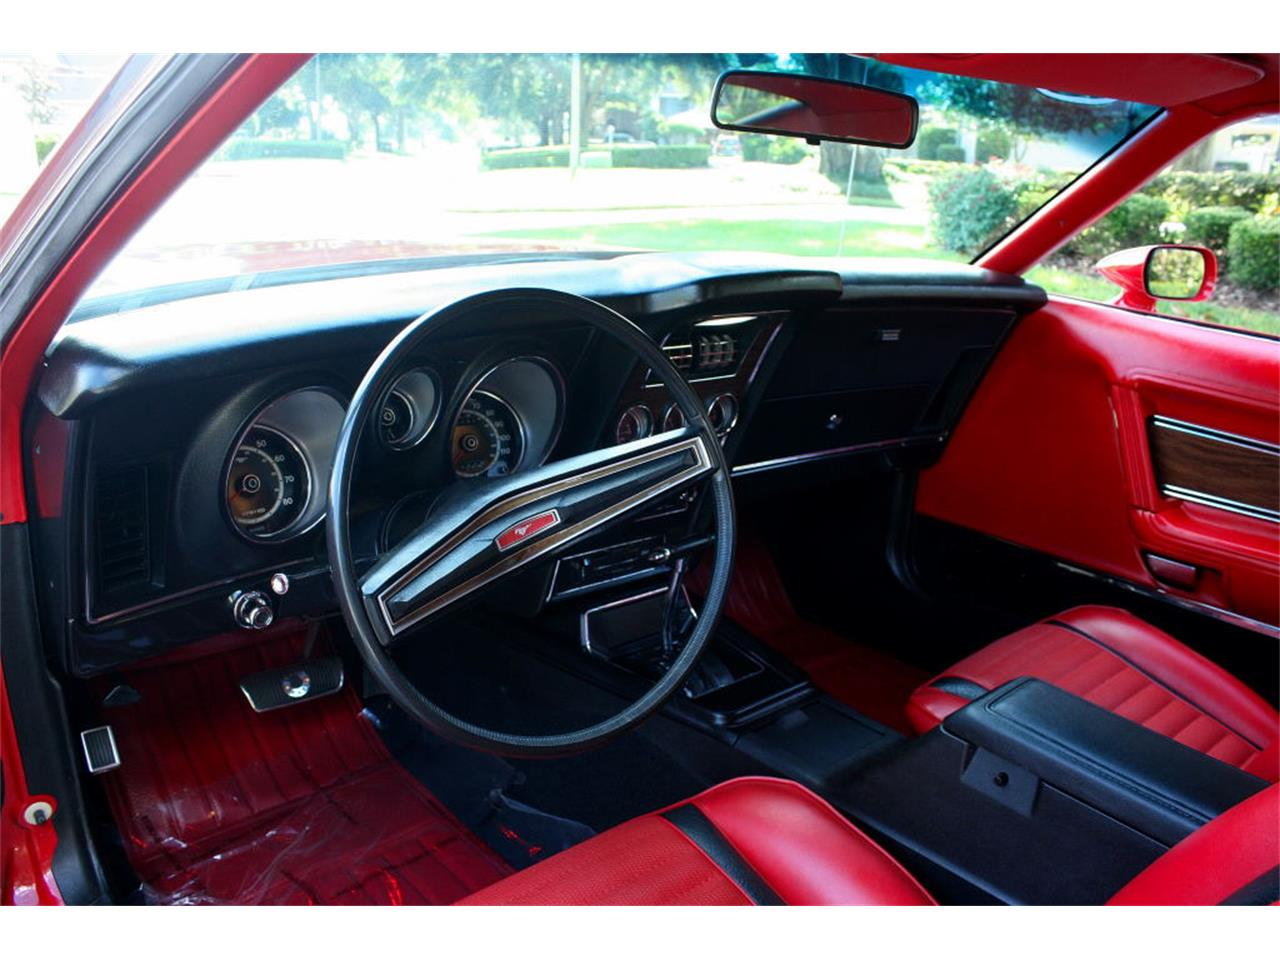 Large Picture of '72 Ford Mustang located in Florida - $39,500.00 - MGWW